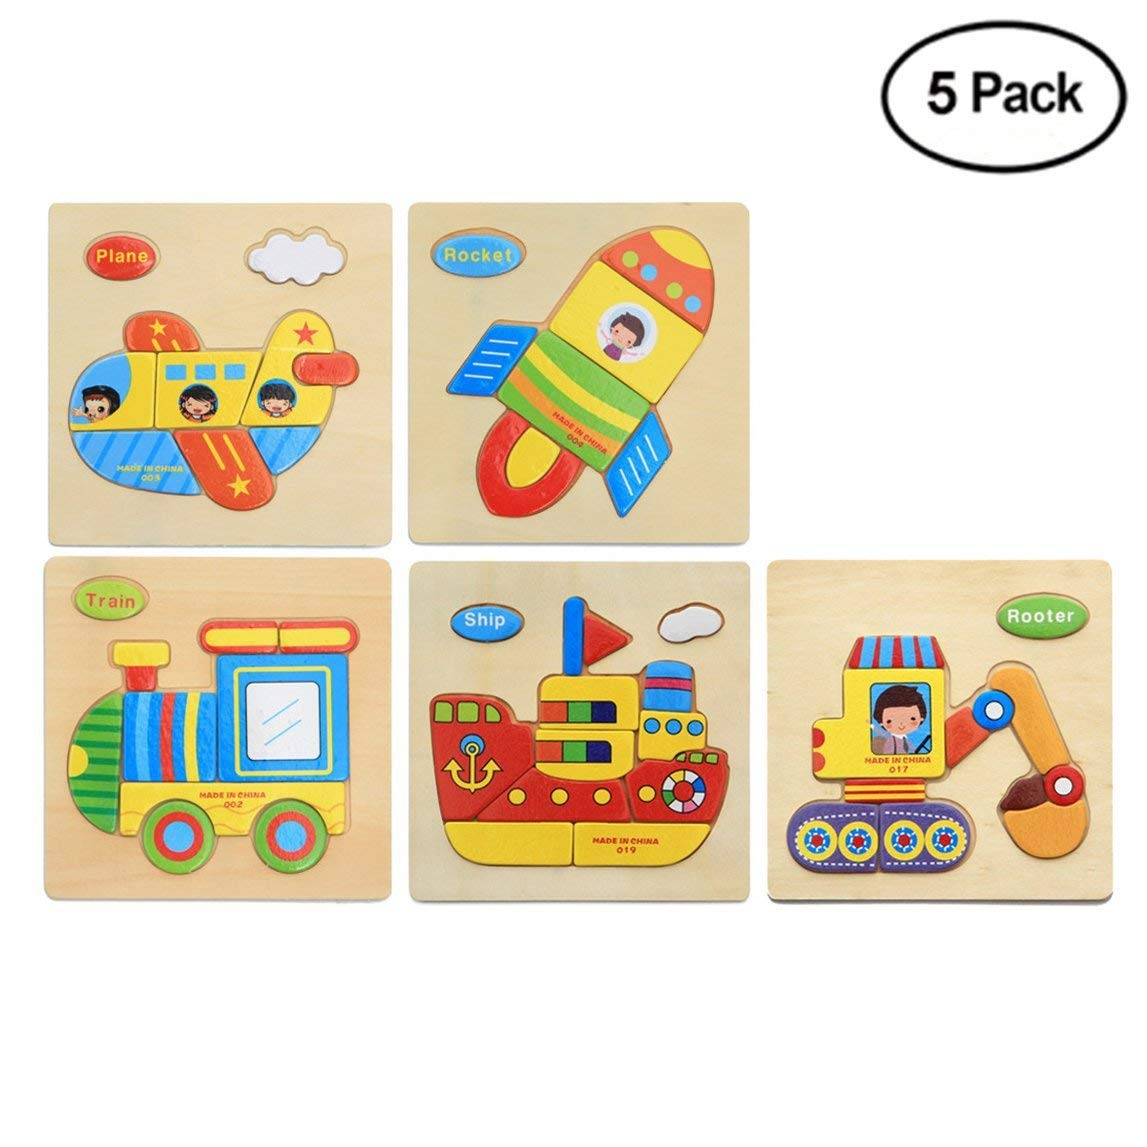 Finduat 5 Pack 3D Wooden Jigsaw Puzzle Toys for Toddlers, Babies Kids Wooden Jigsaw Puzzle Toys – Plane, Rocket, Train, Ship, Rooter (5 Pack)